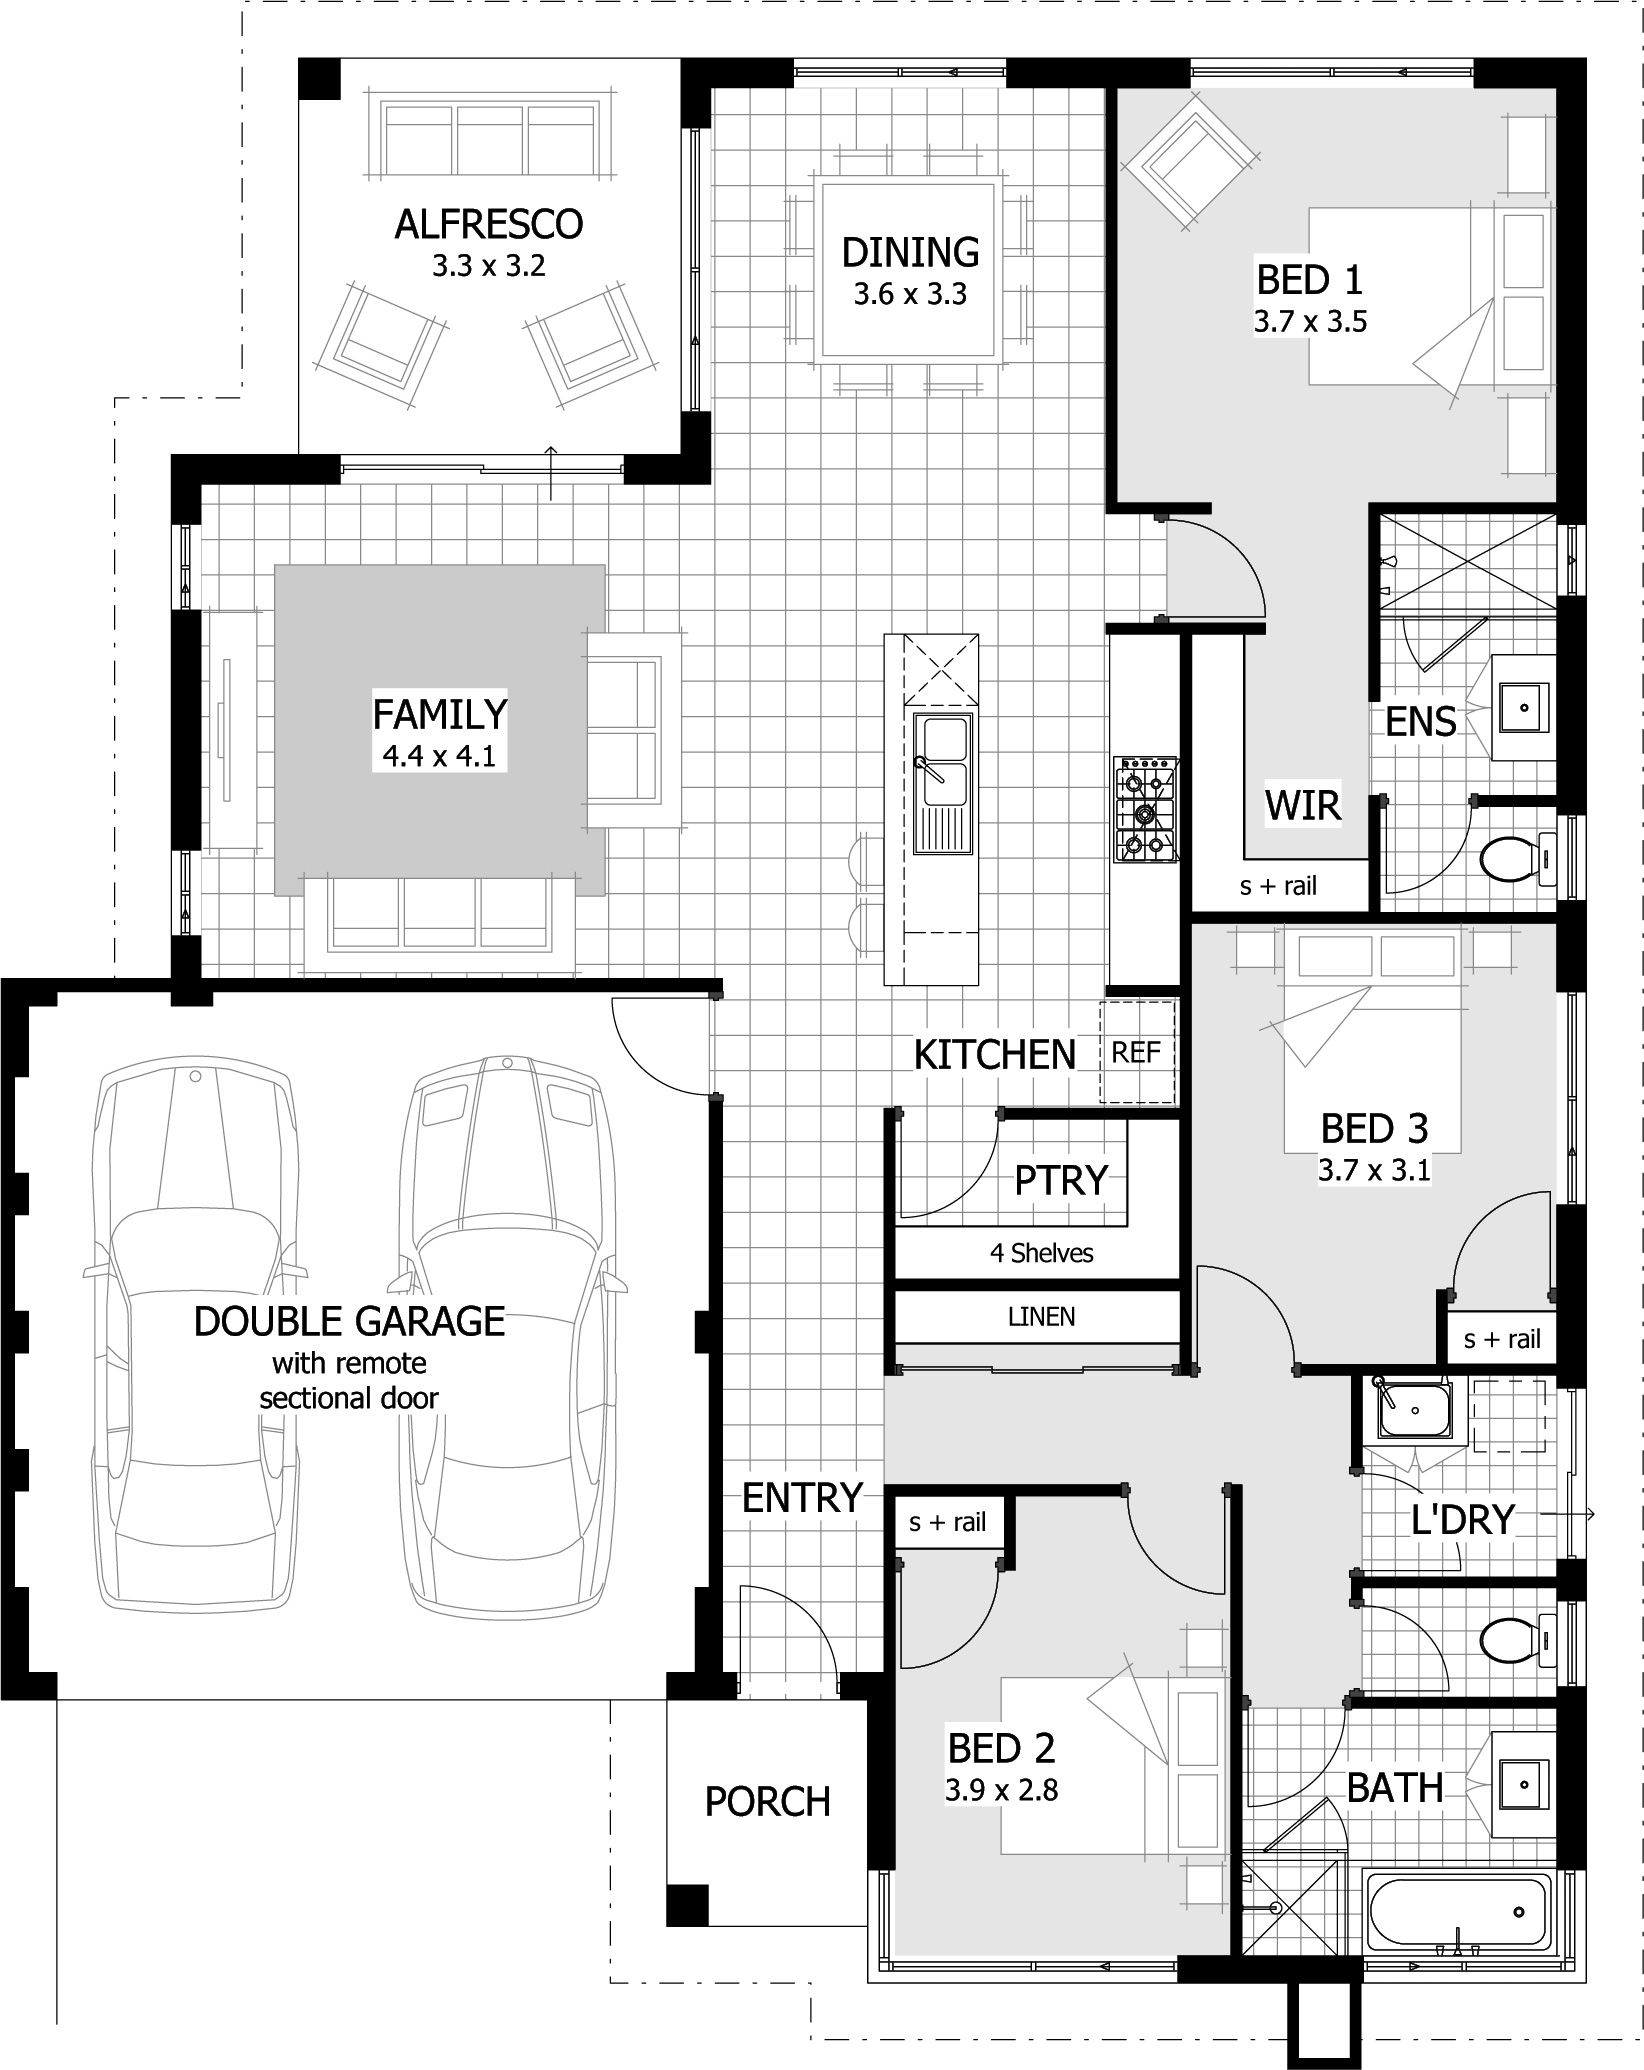 3 Bedroom Home Designs And Plans Bedroom House Plans 4 Bedroom House Plans House Plans